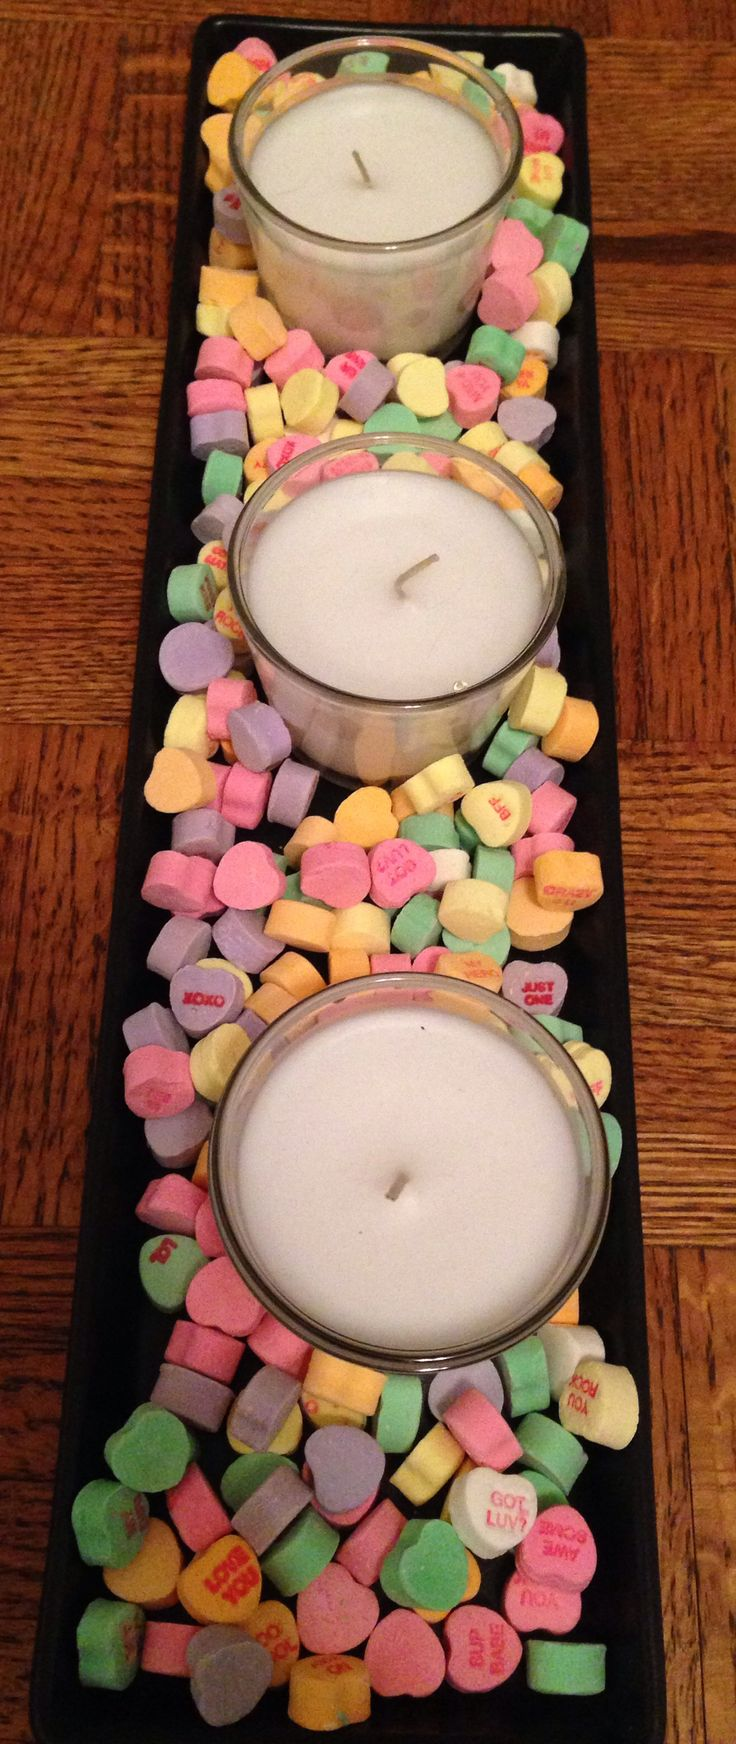 From previous pinner: Cute Valentine's Day decoration!